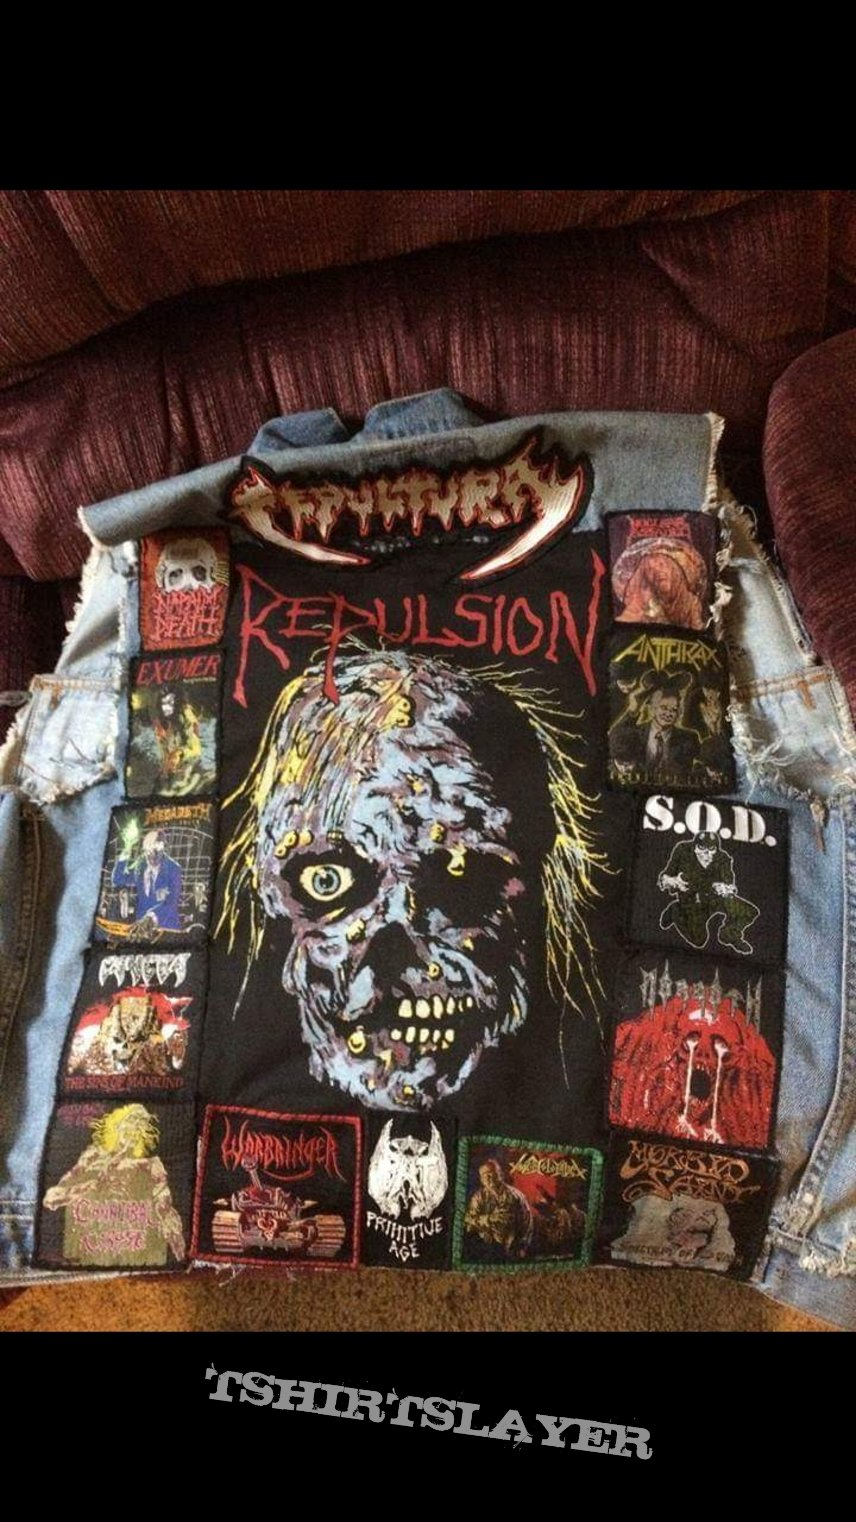 Old jackets of mine